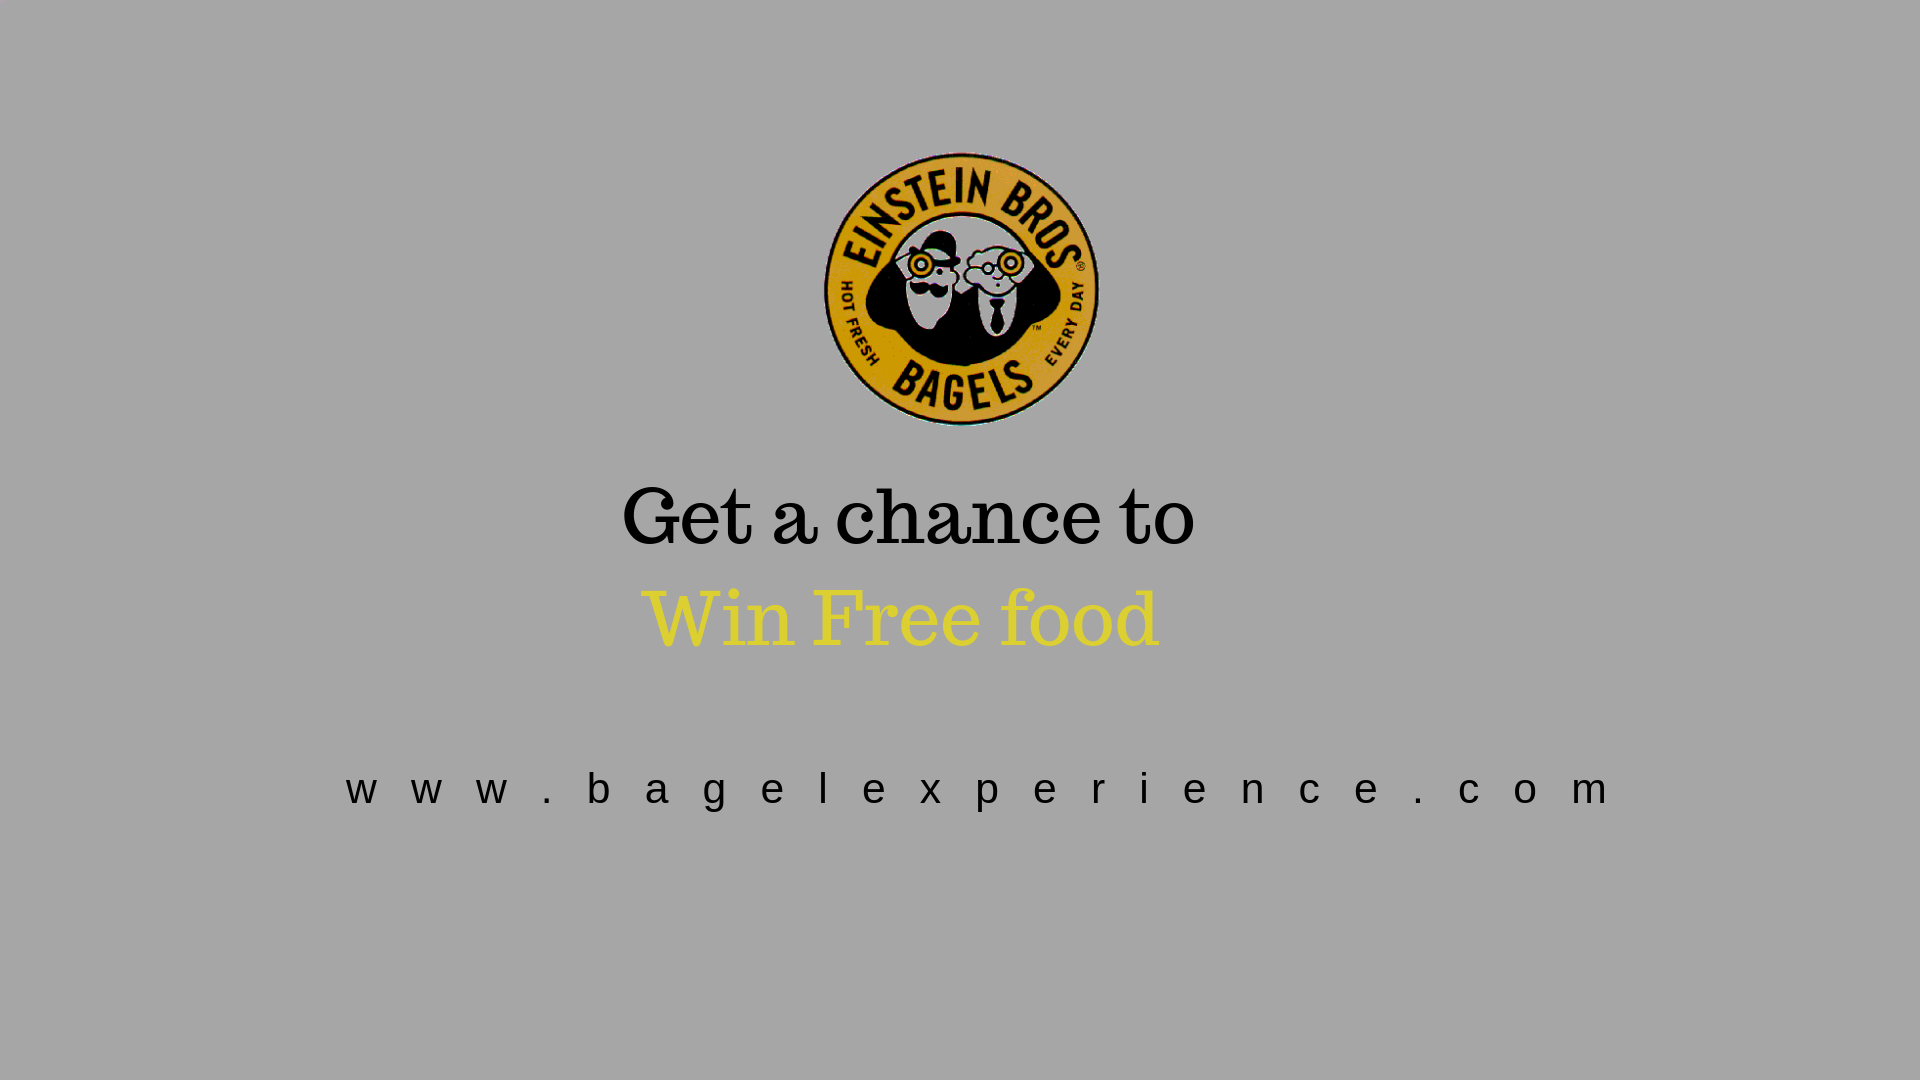 Einstein Bagel Survey - Get a Chance to win Free Food